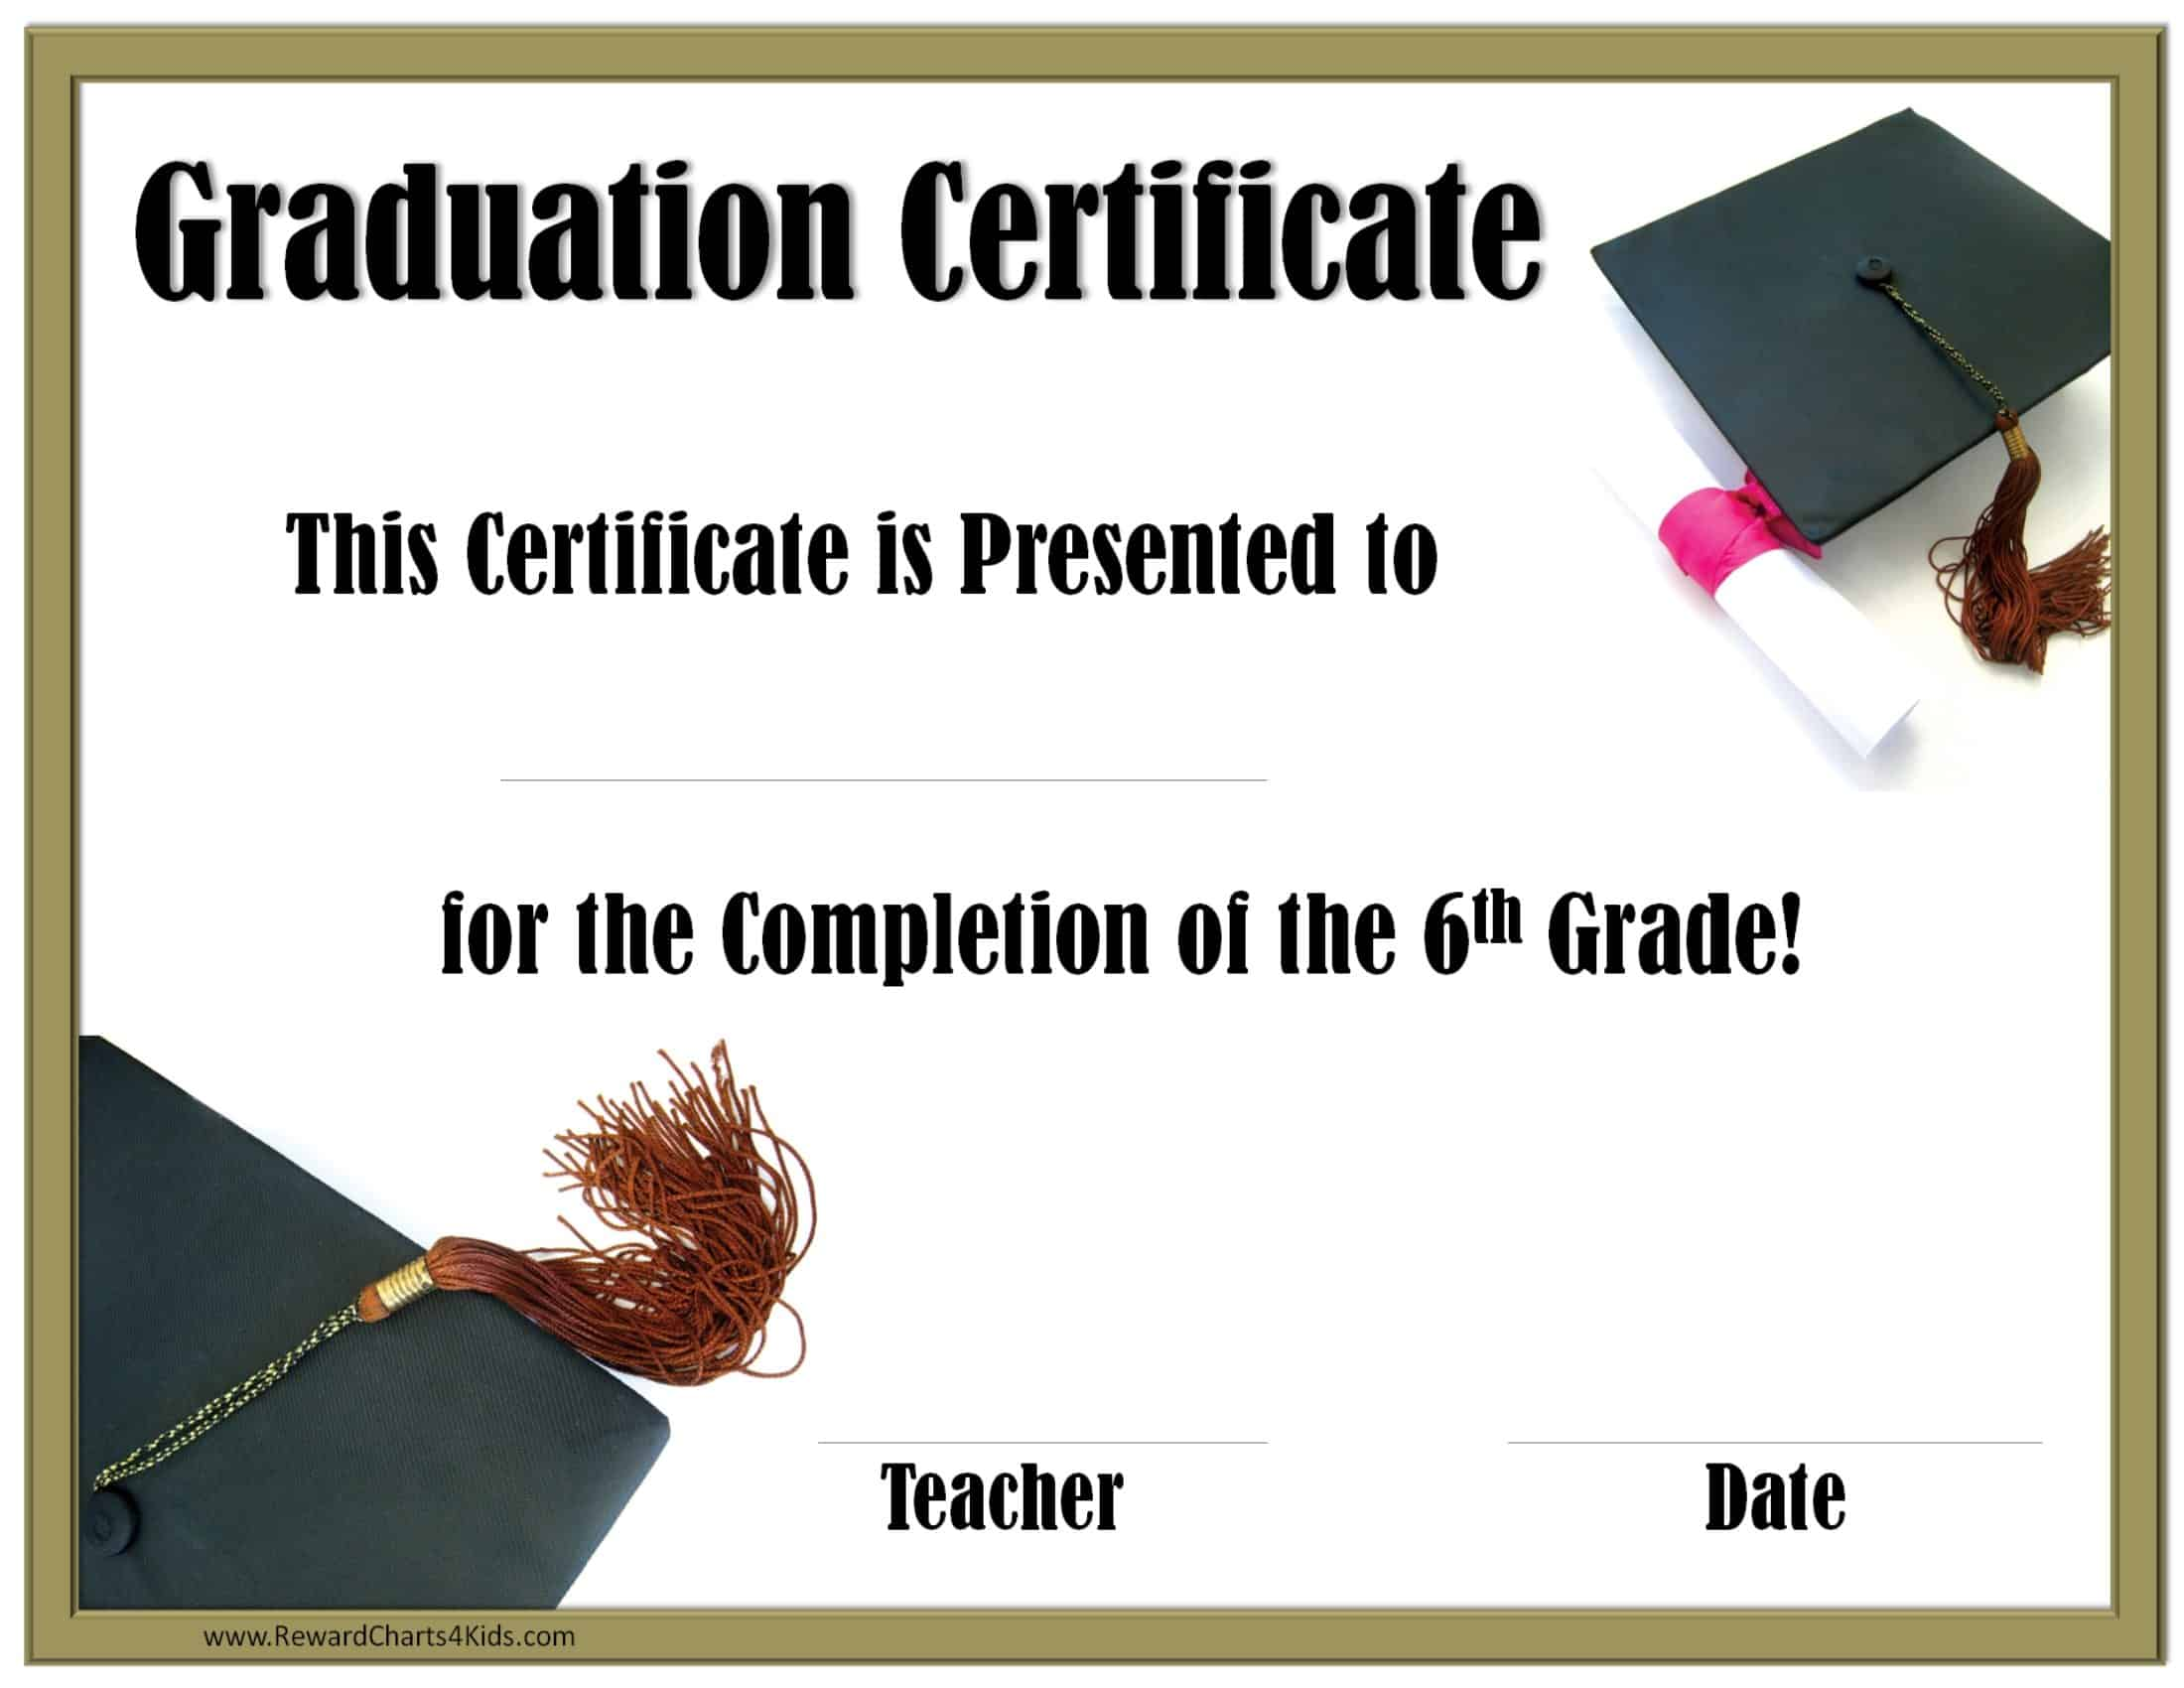 Graduation certificate templates 3112011 use free microsoft word templates to create good looking certificate of appreciation award certificates and other awards for any occasion yadclub Choice Image